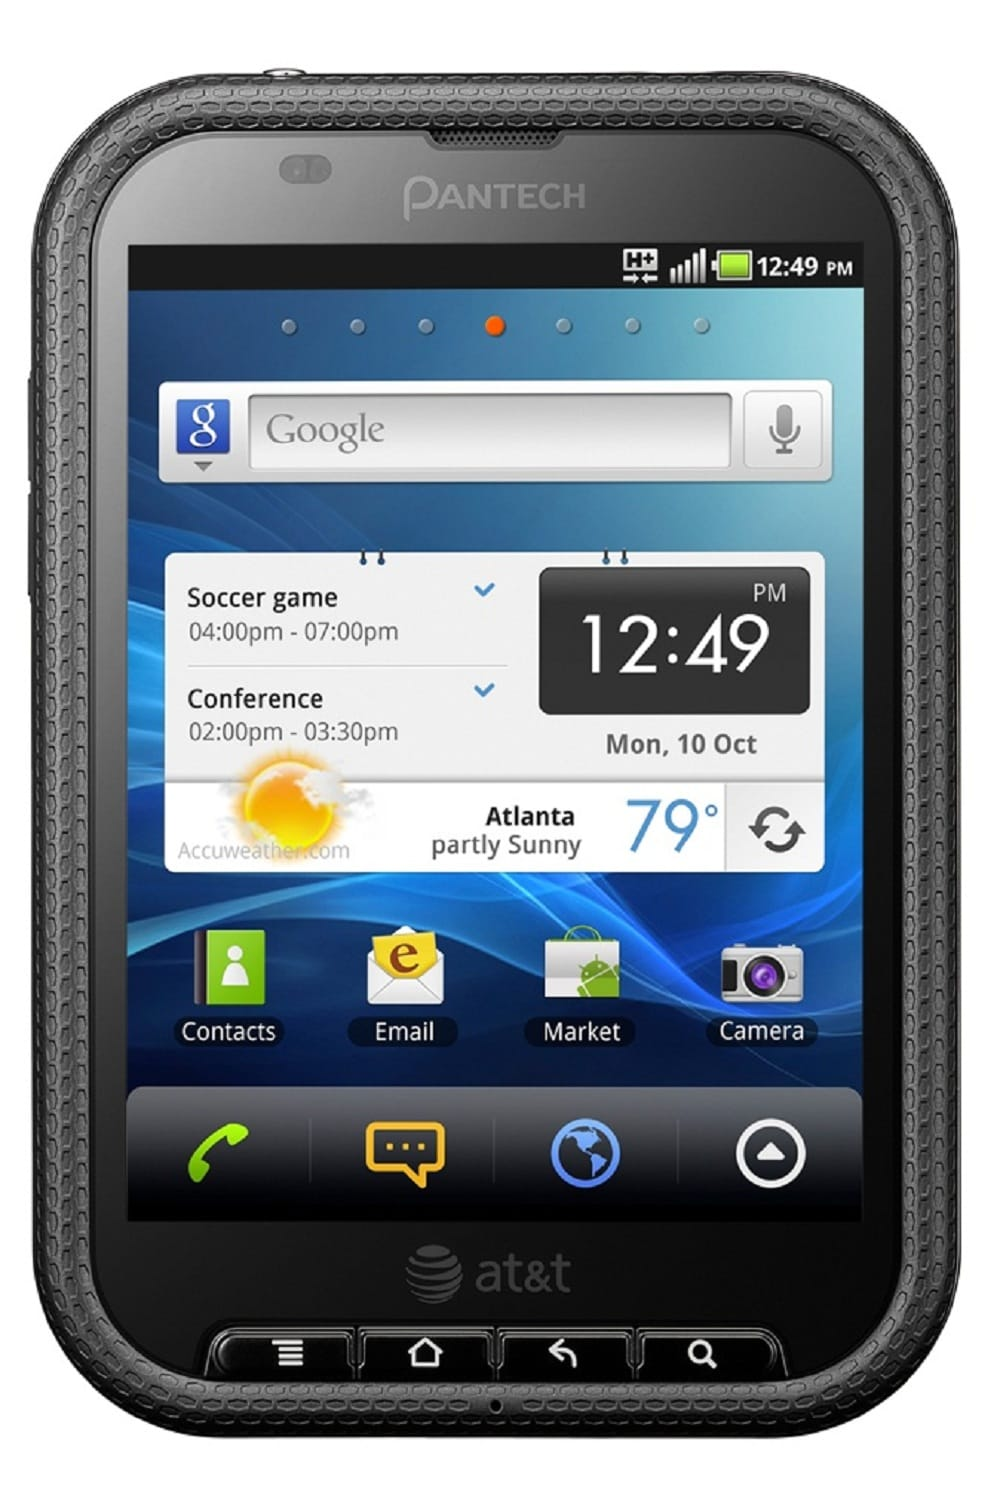 Pantech Pocket P9060 GSM Unlocked Android Cell Phone